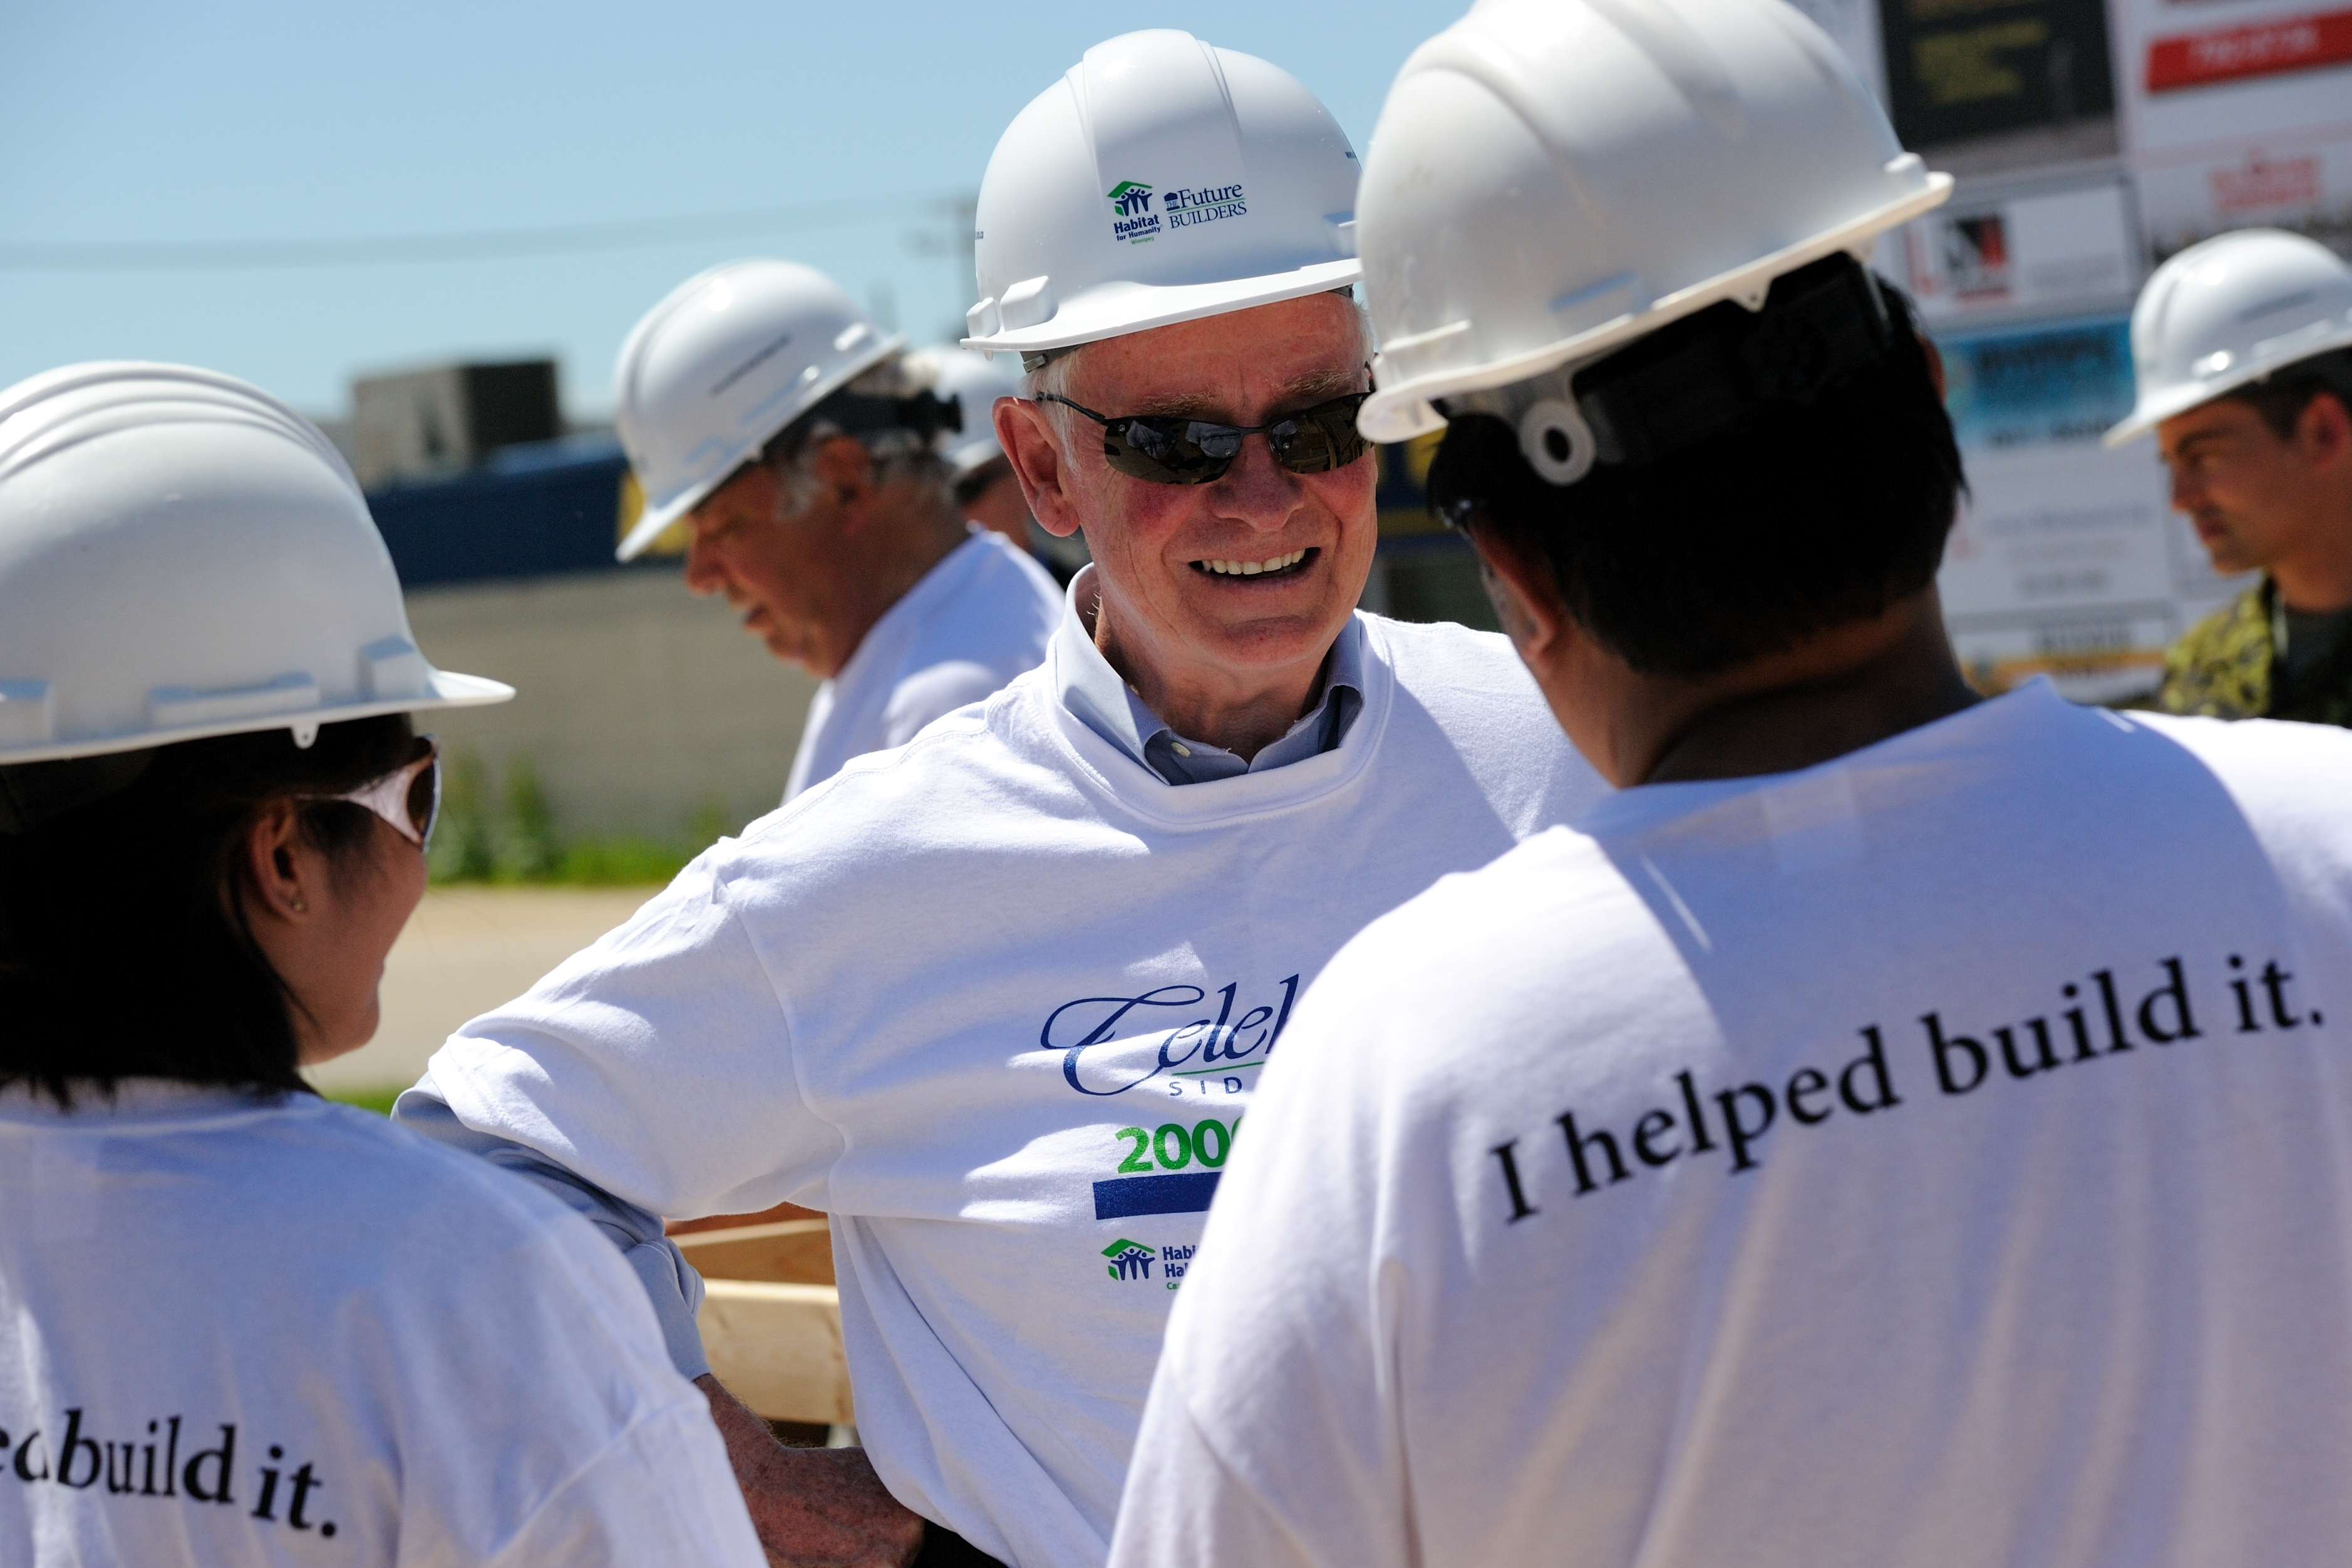 His Excellency meeting with the future owners of the 2000th Habitat for Humanity home, currently under construction.